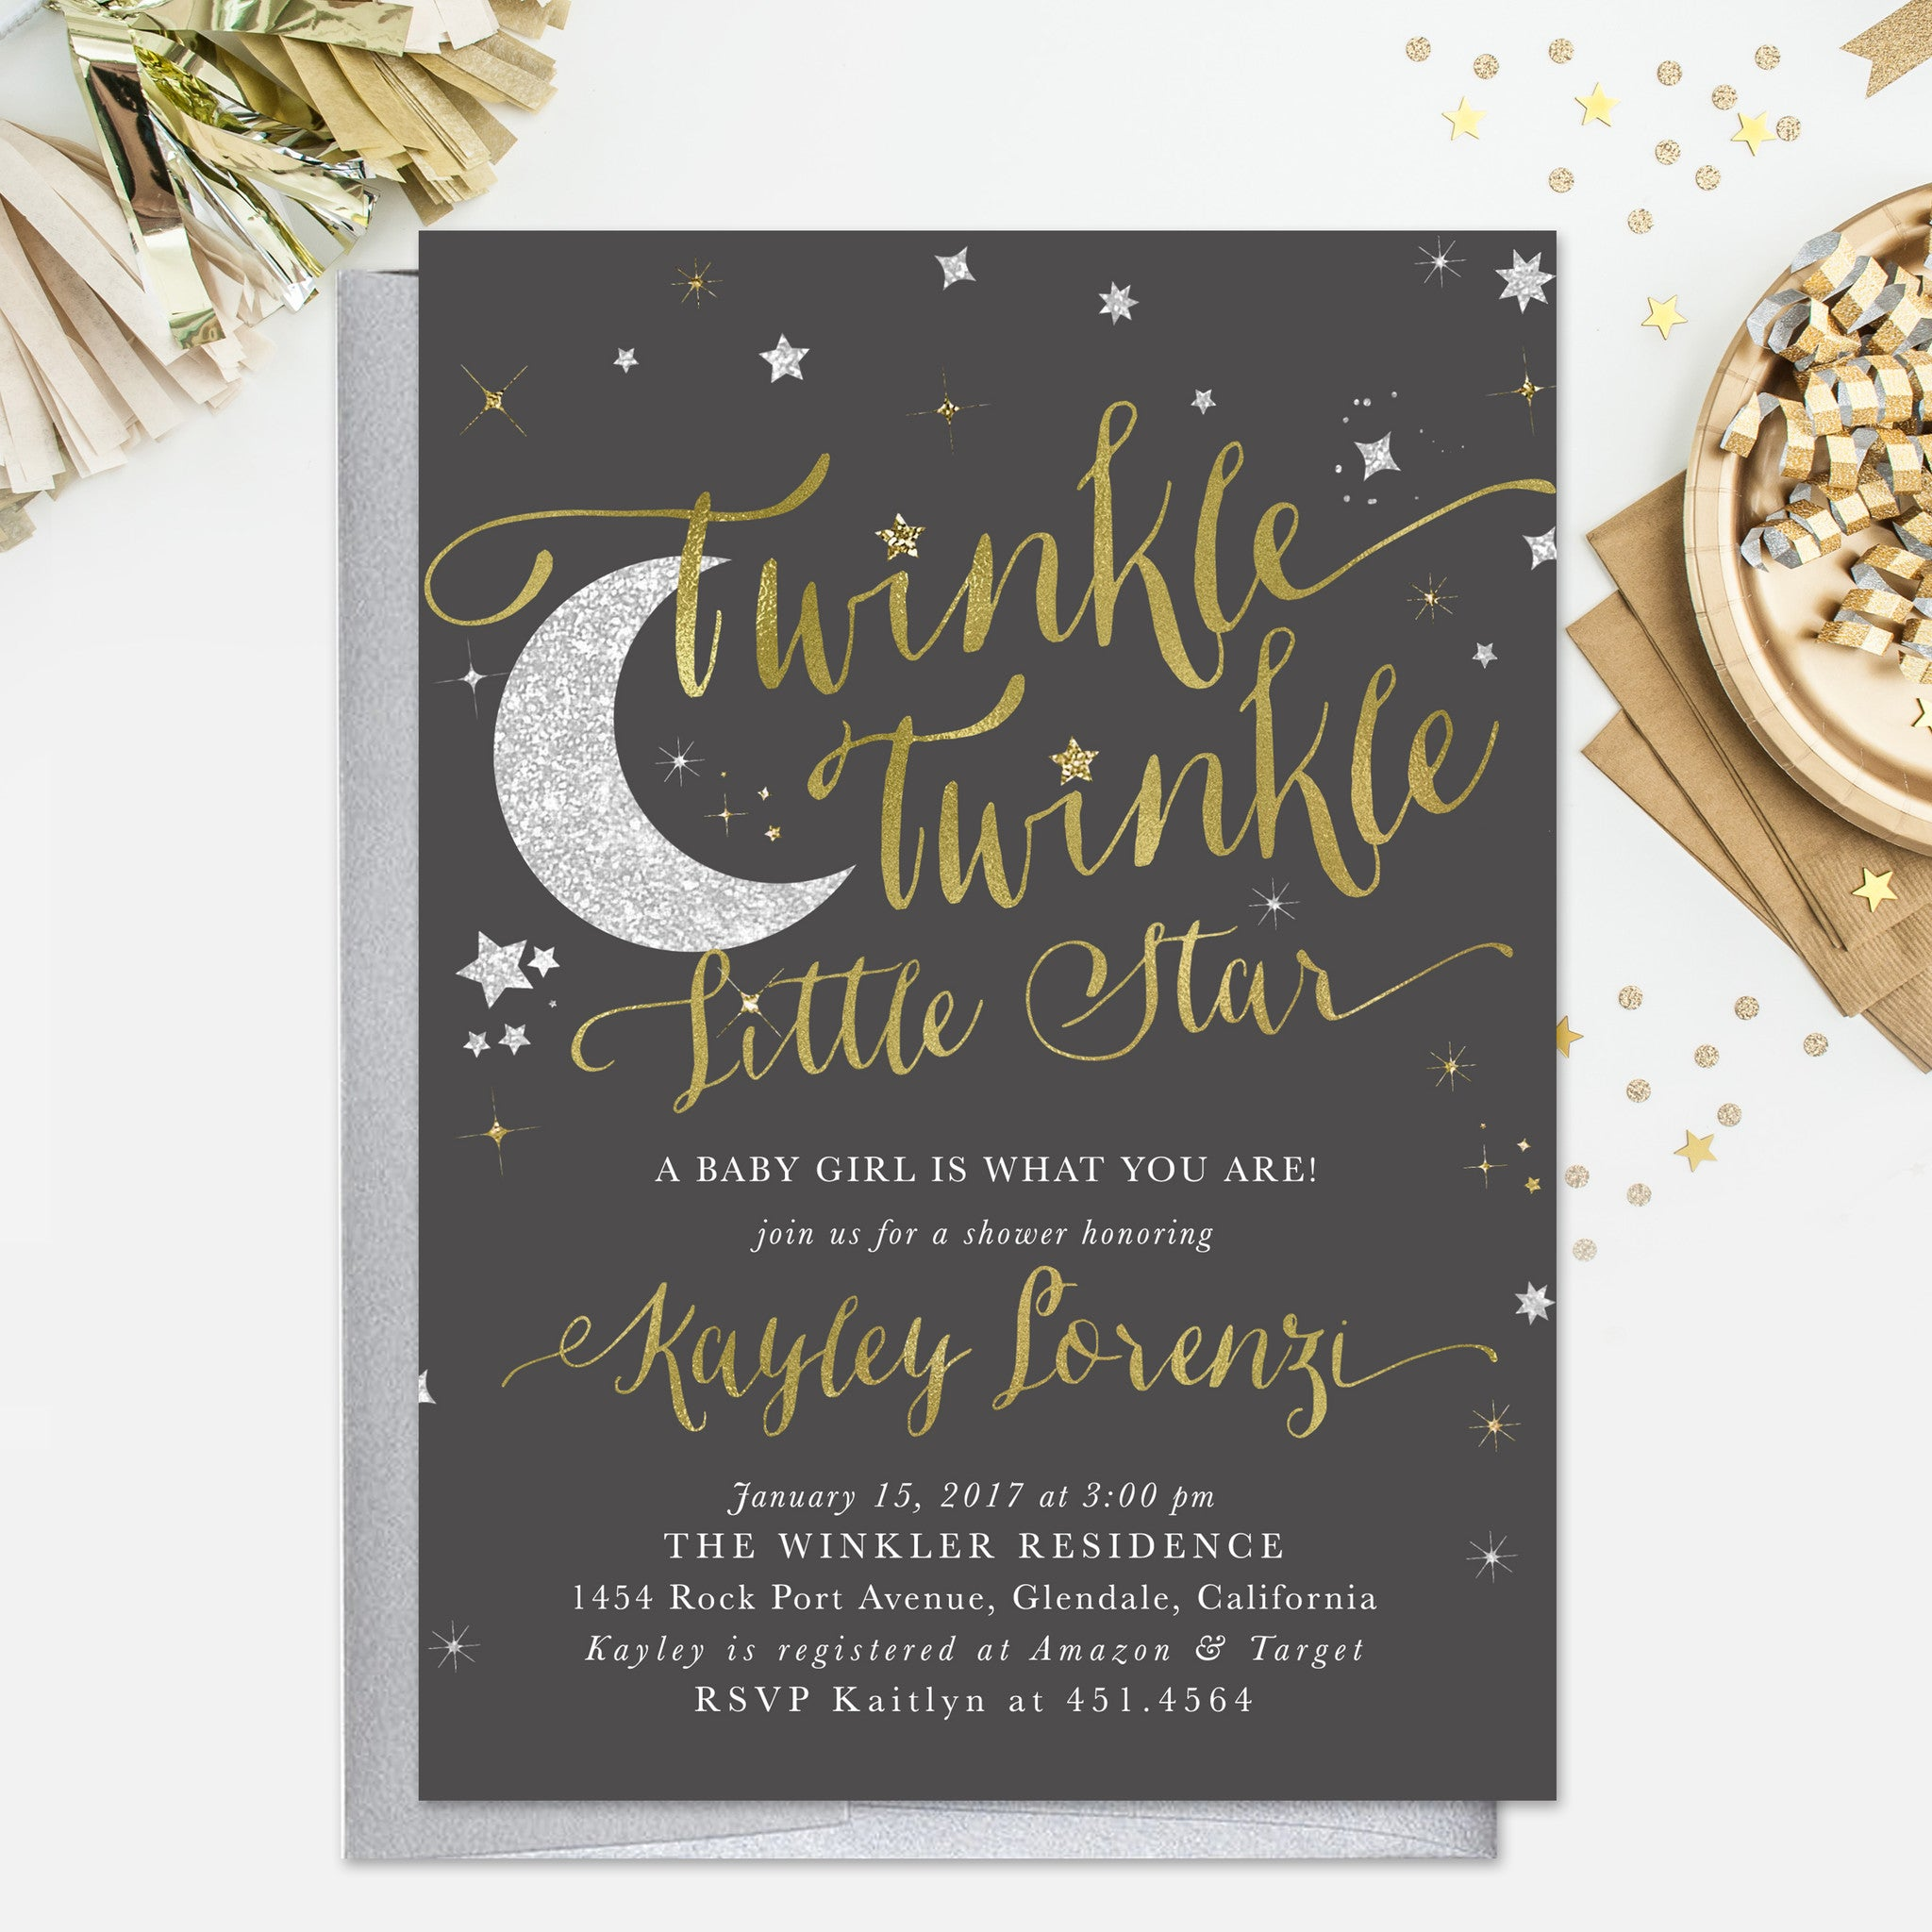 Twinkle twinkle little star boy or girl baby shower invitation dark twinkle twinkle little star boy or girl baby shower invitation dark grey filmwisefo